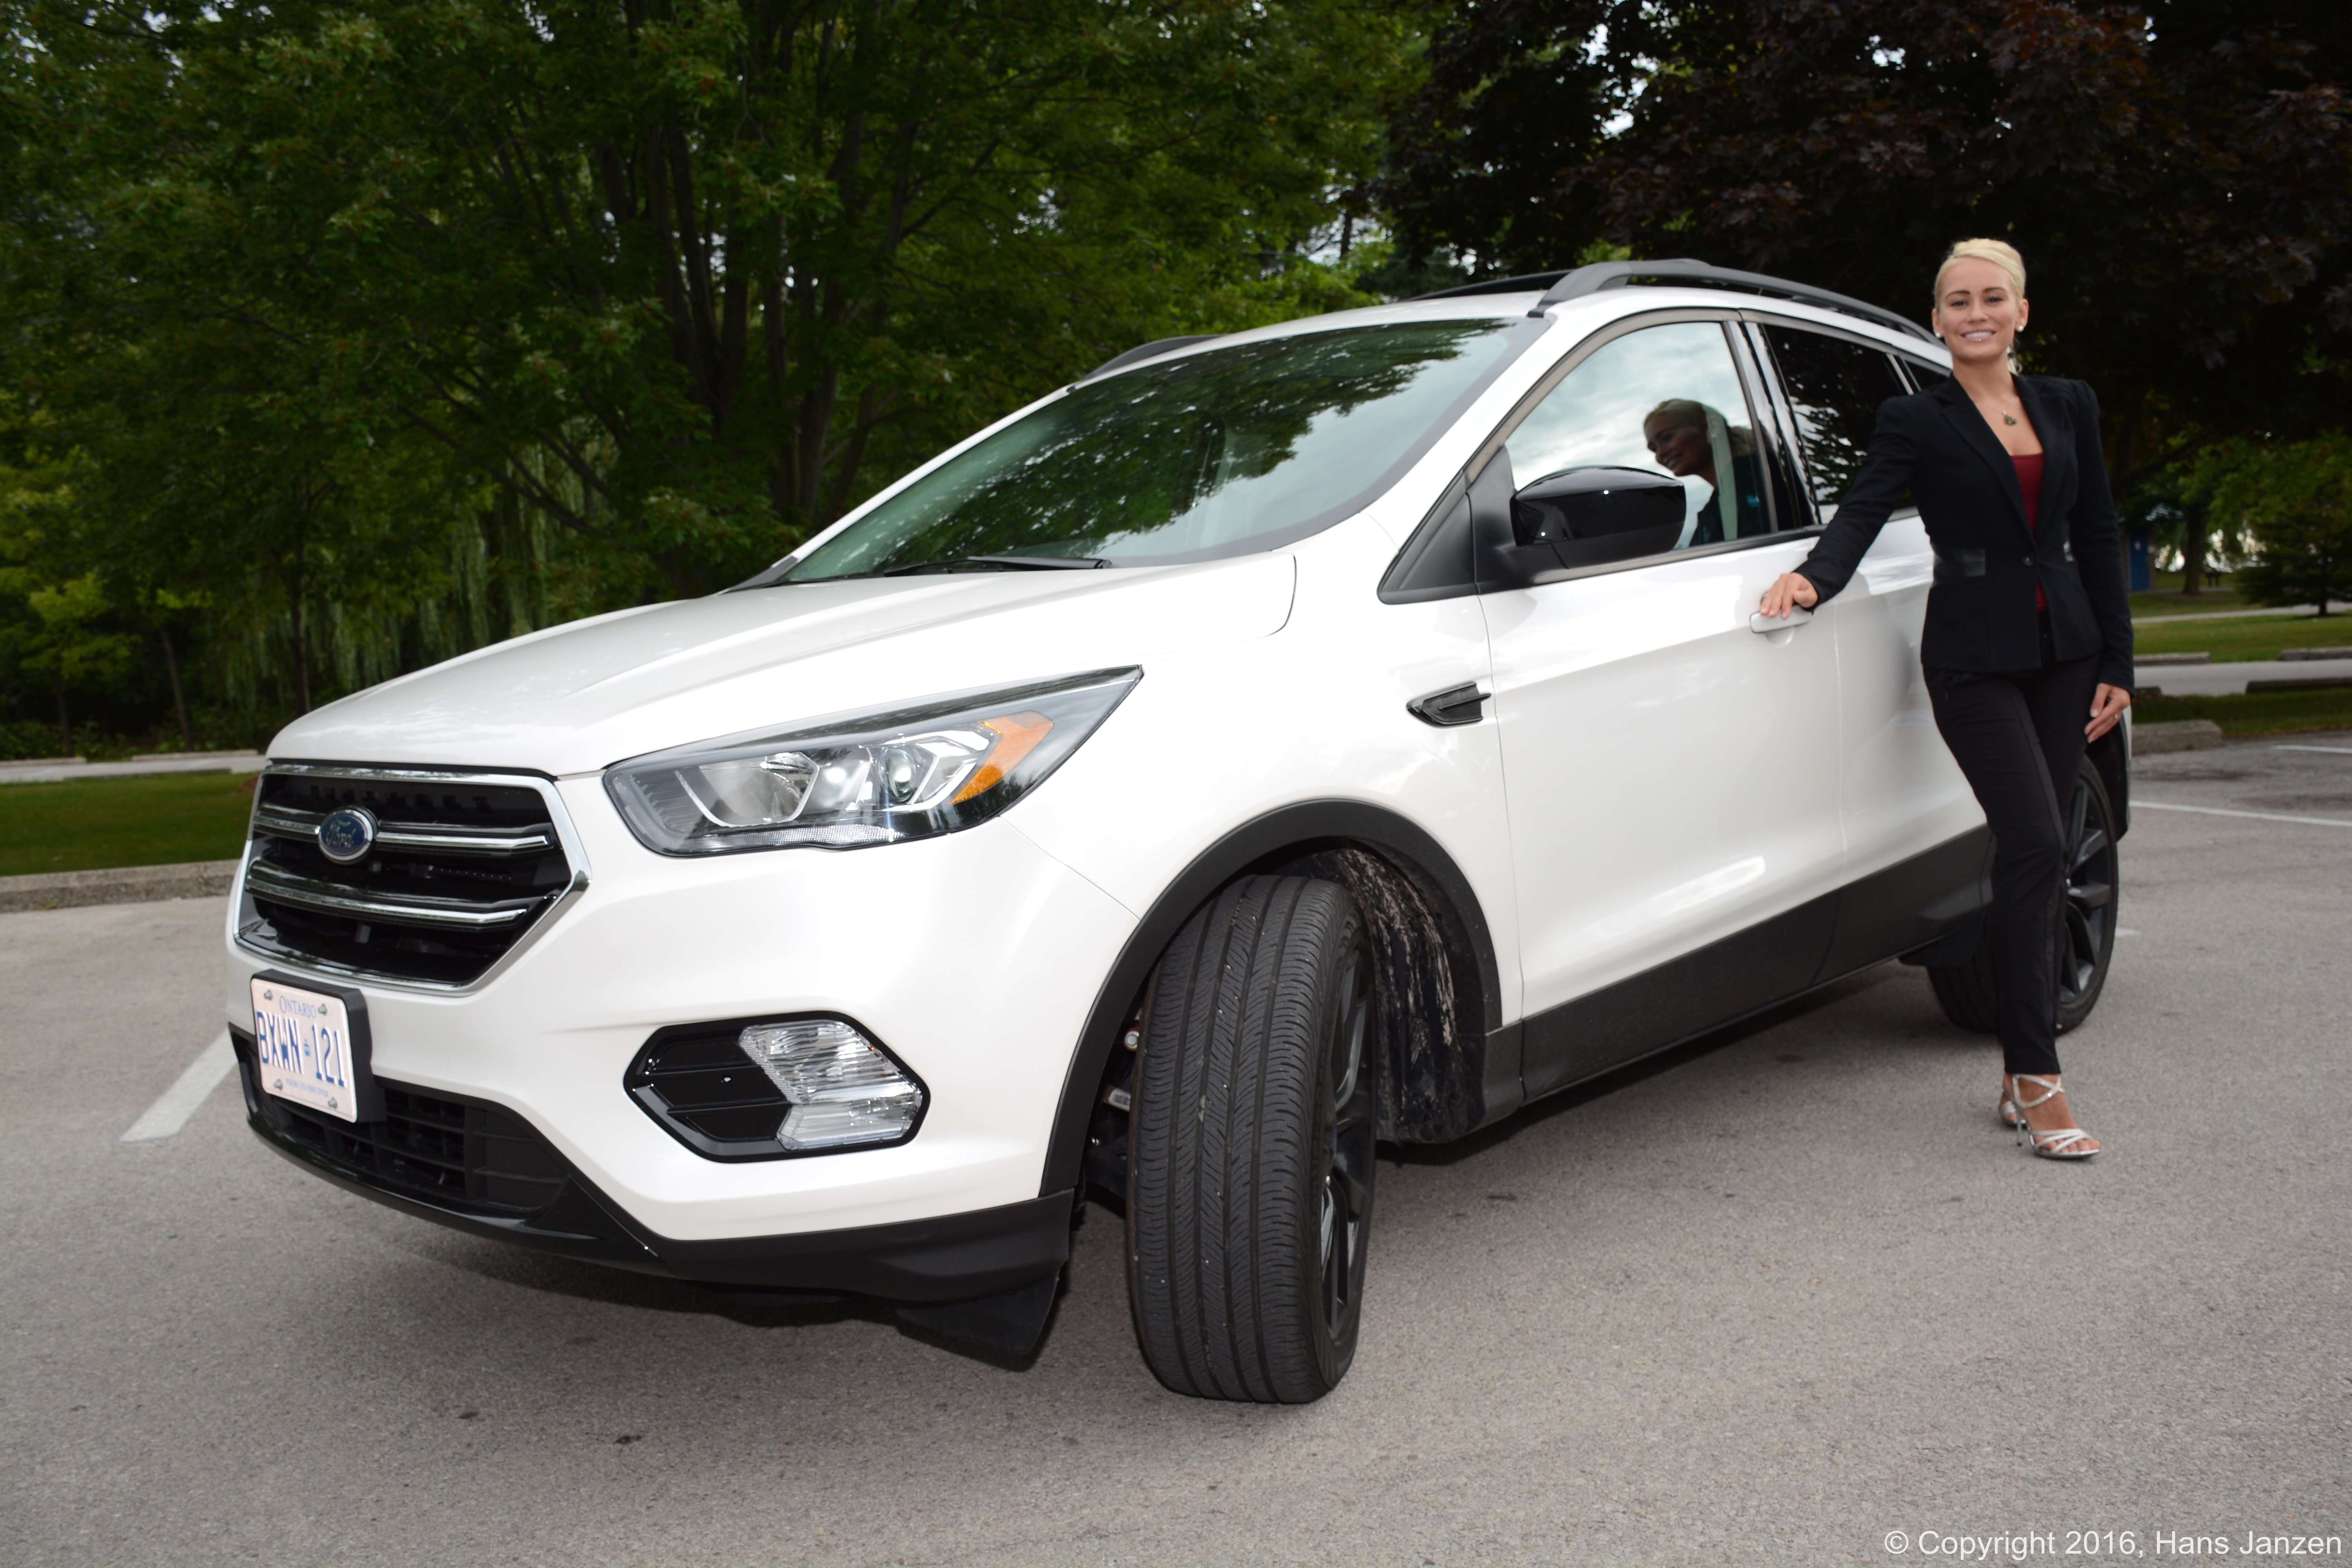 Ford Escape Se >> The 2017 Ford Escape: Consumer Car Review | Theresa Longo